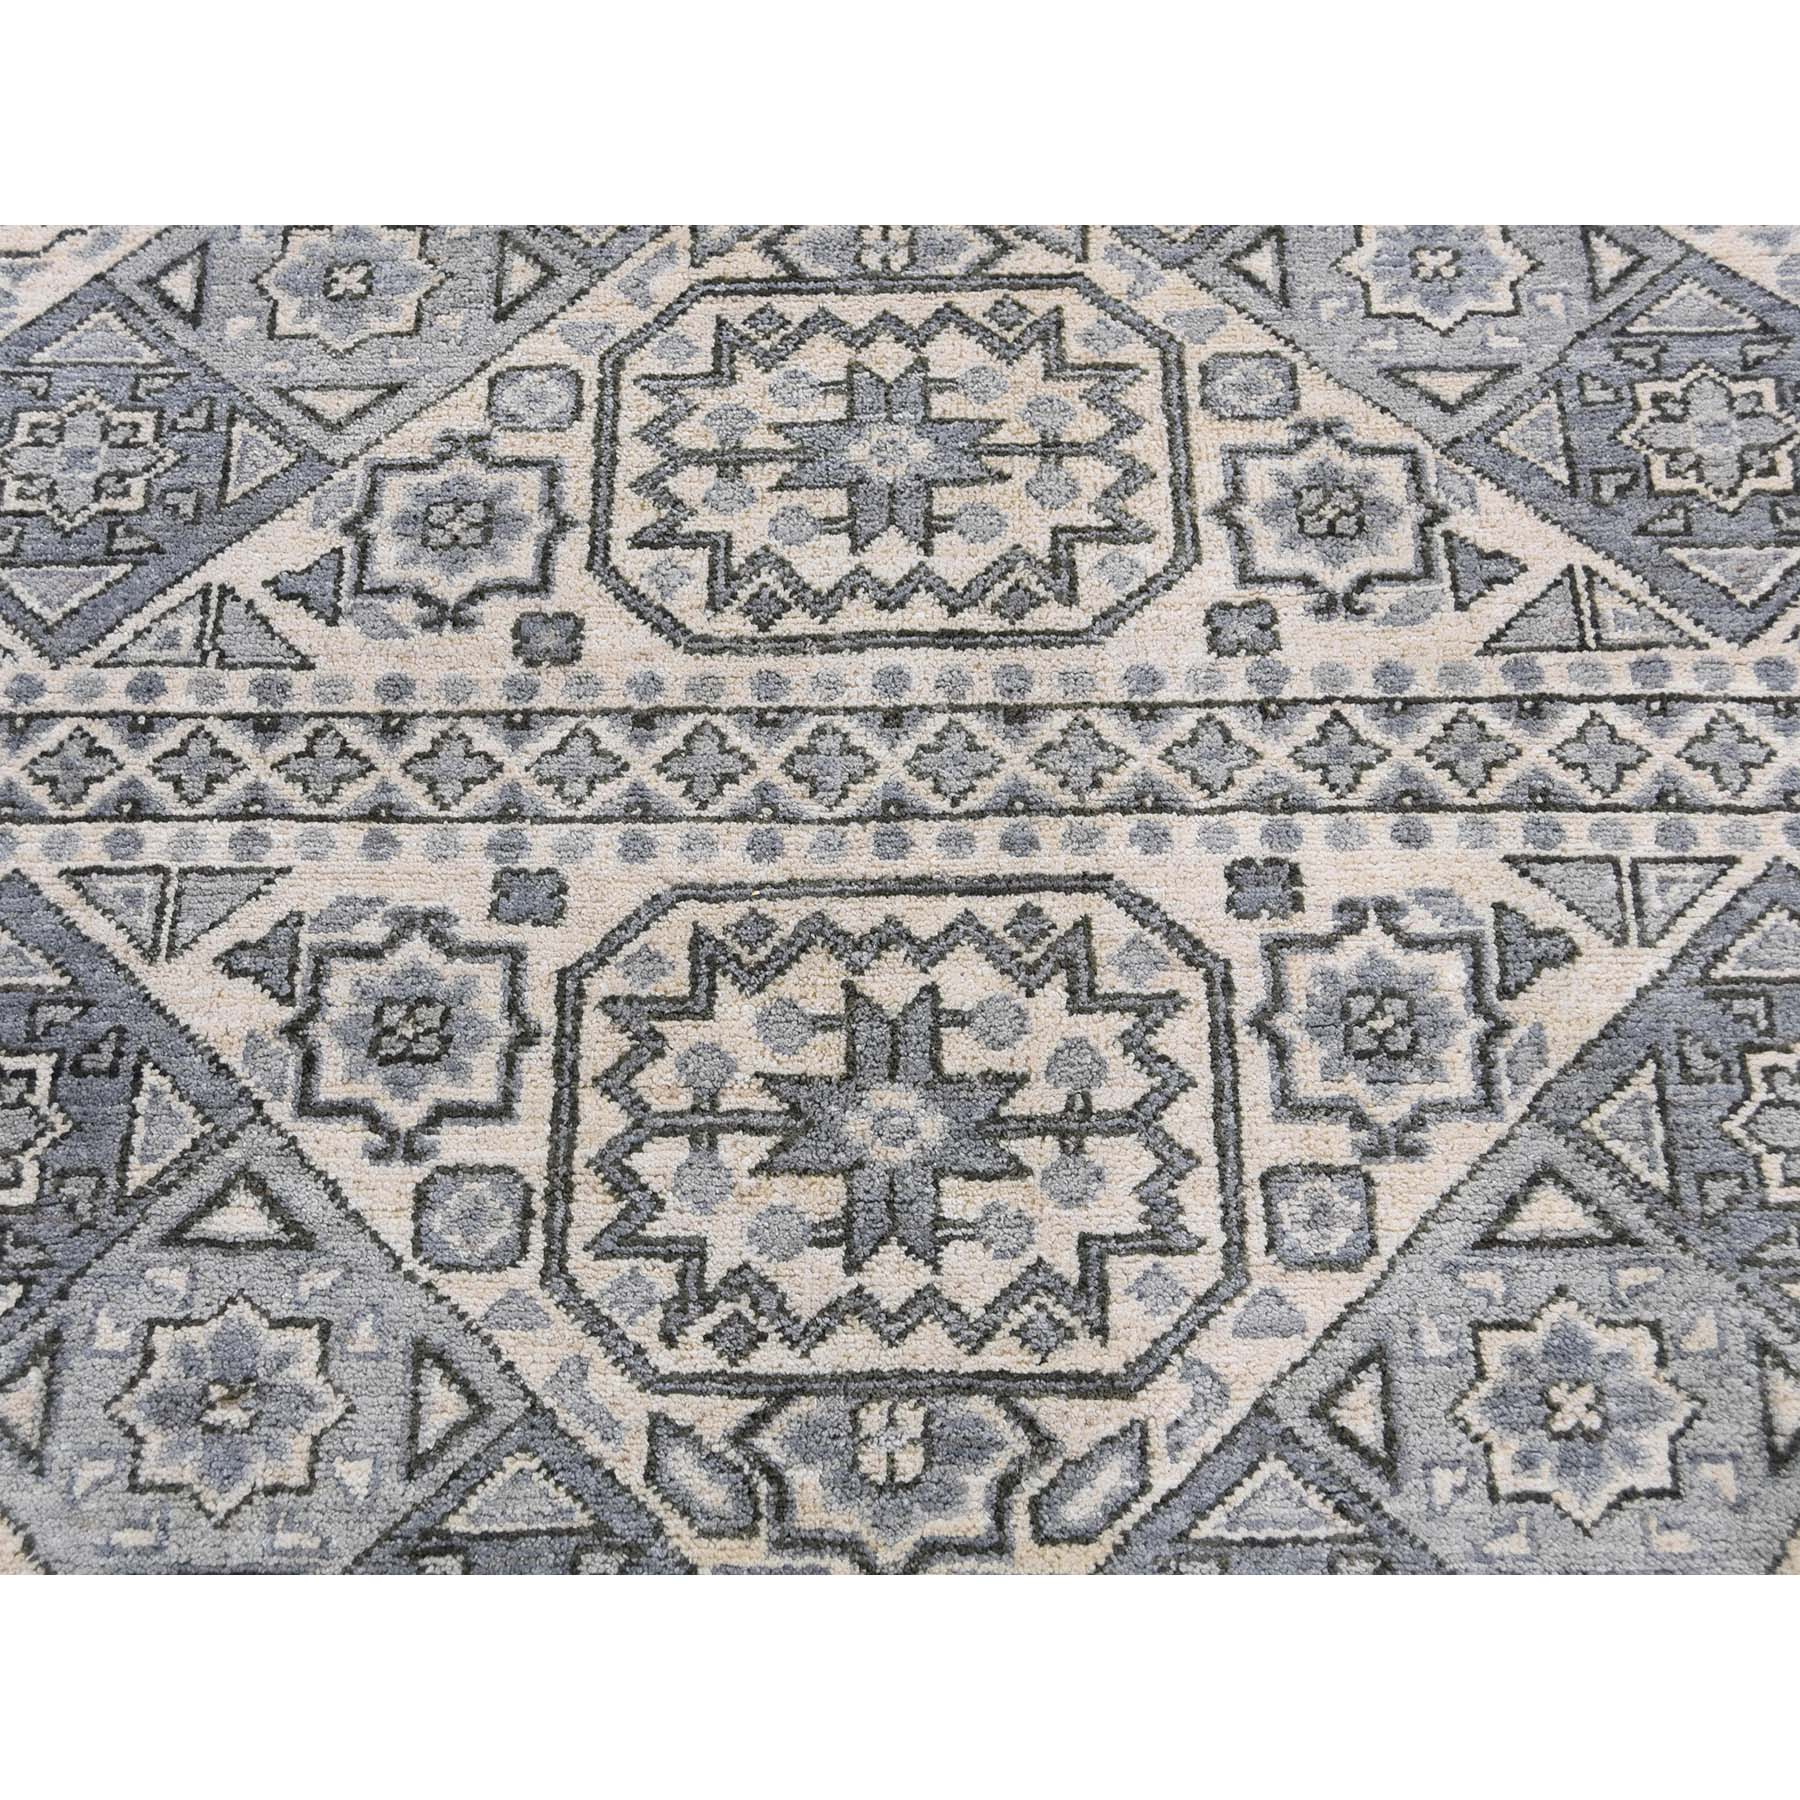 8-2 x10-5  Mamluk Design Hand-Knotted Undyed Natural Wool Oriental Rug